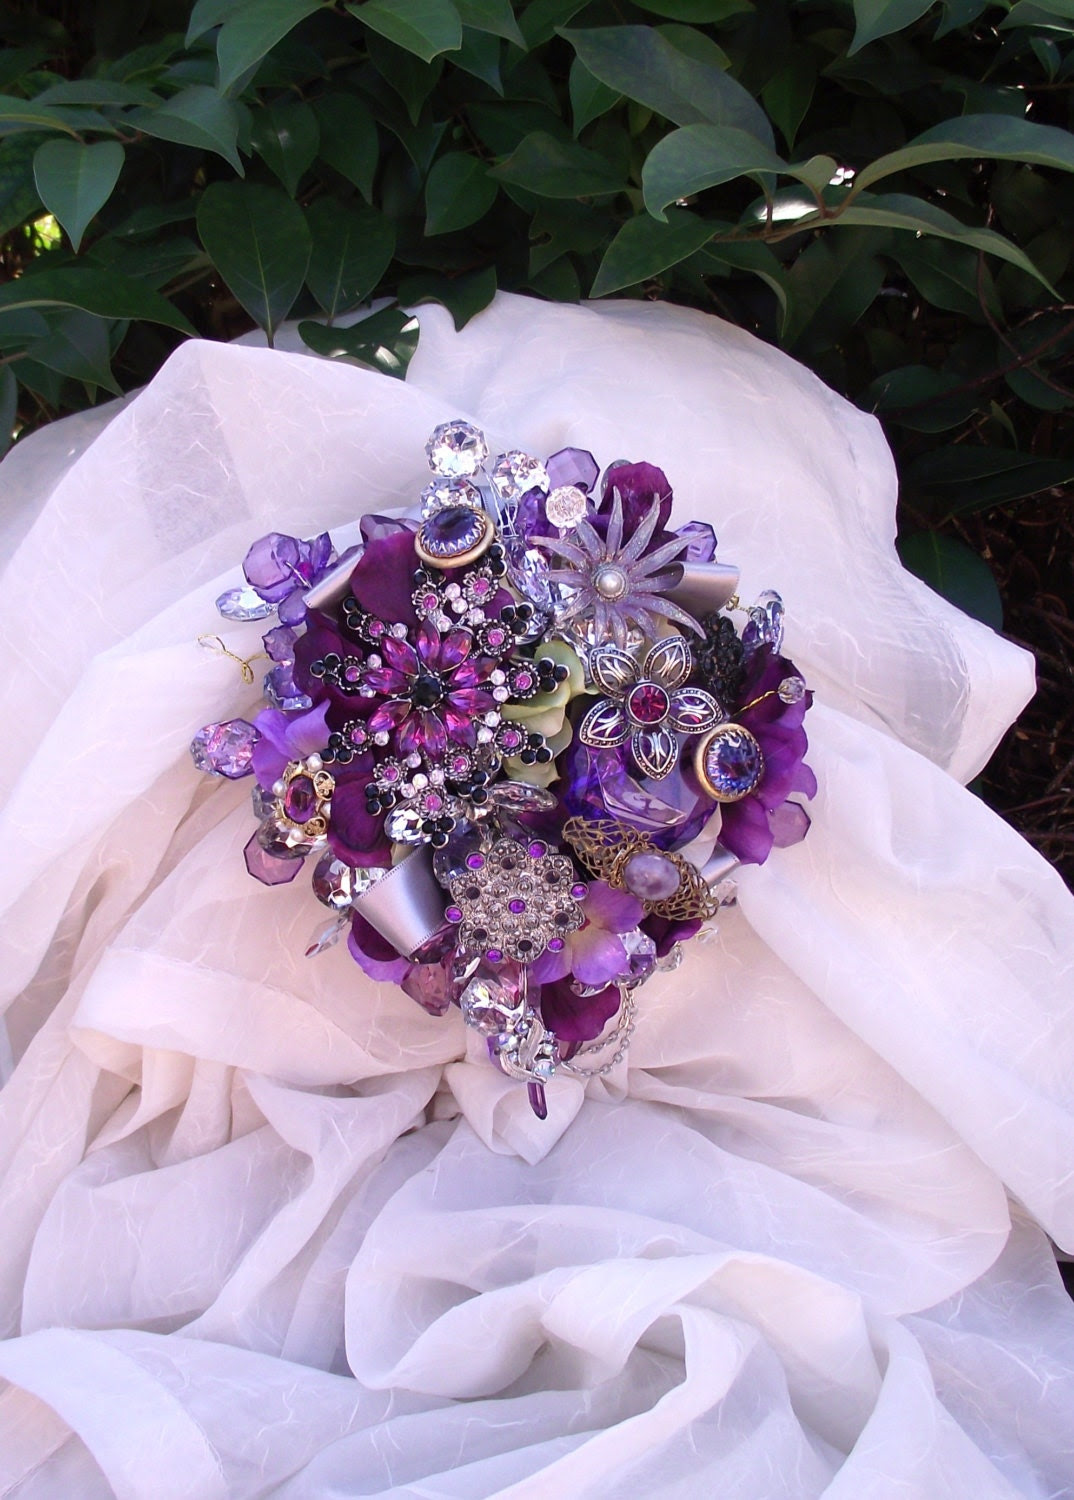 Alison Moser Custom Order: Sangria purple brooch bouquet, with attendants, sangria wedding package